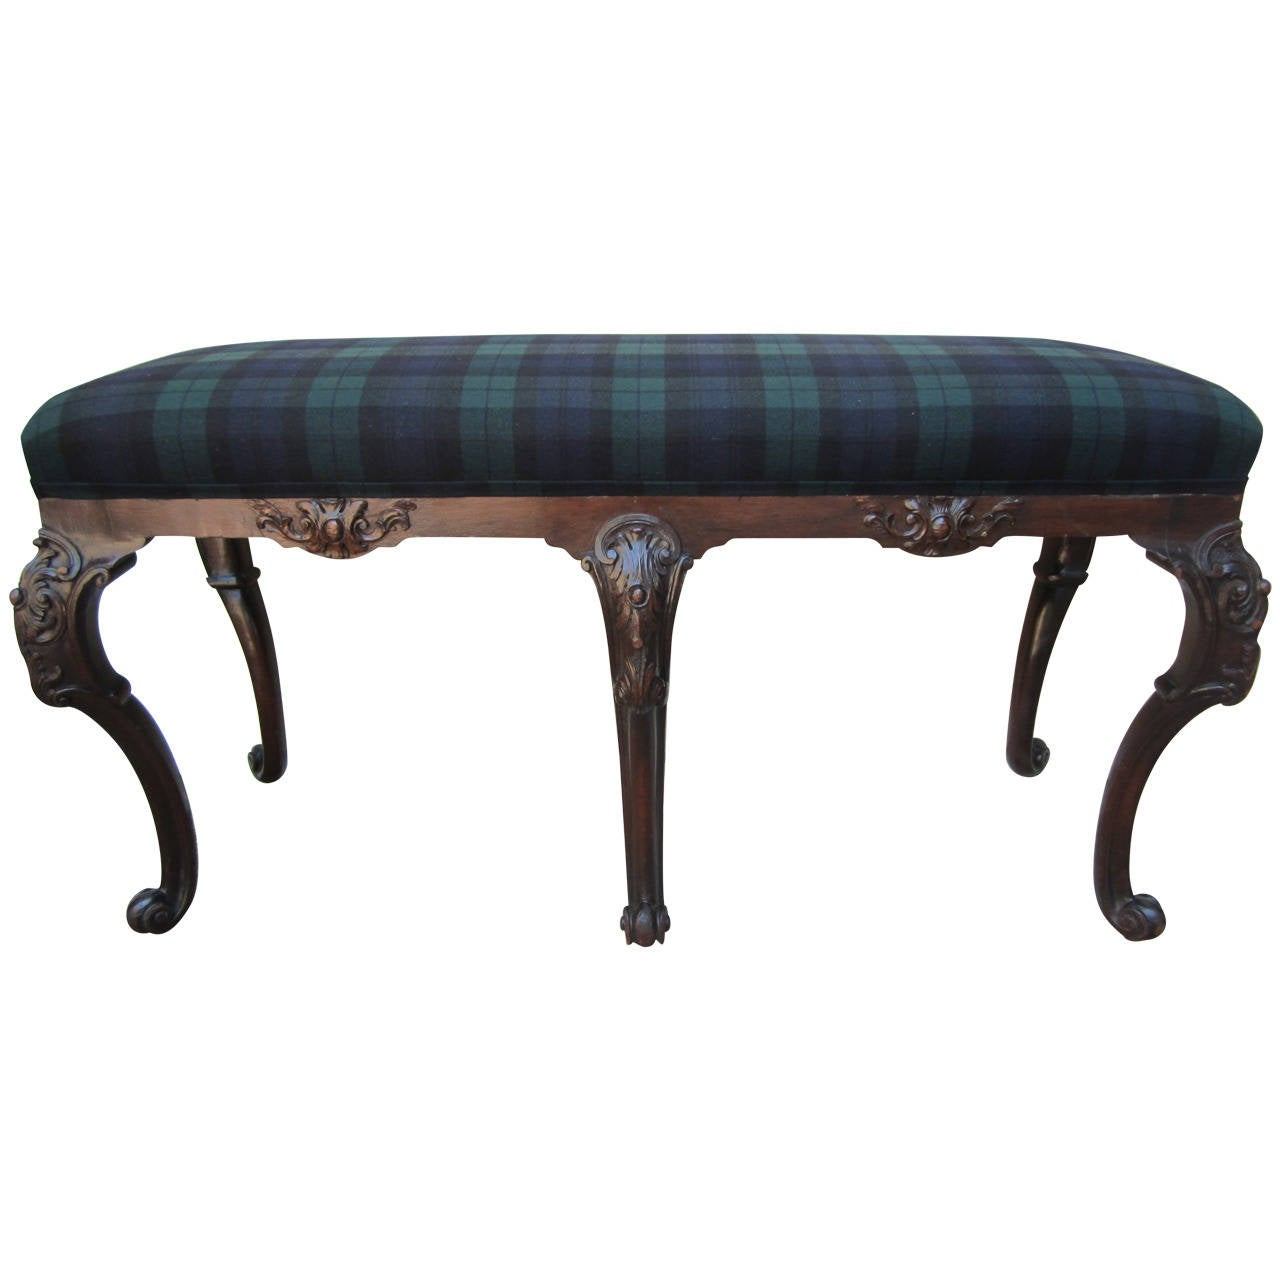 George iii style upholstered bench for sale at 1stdibs Upholstered benches